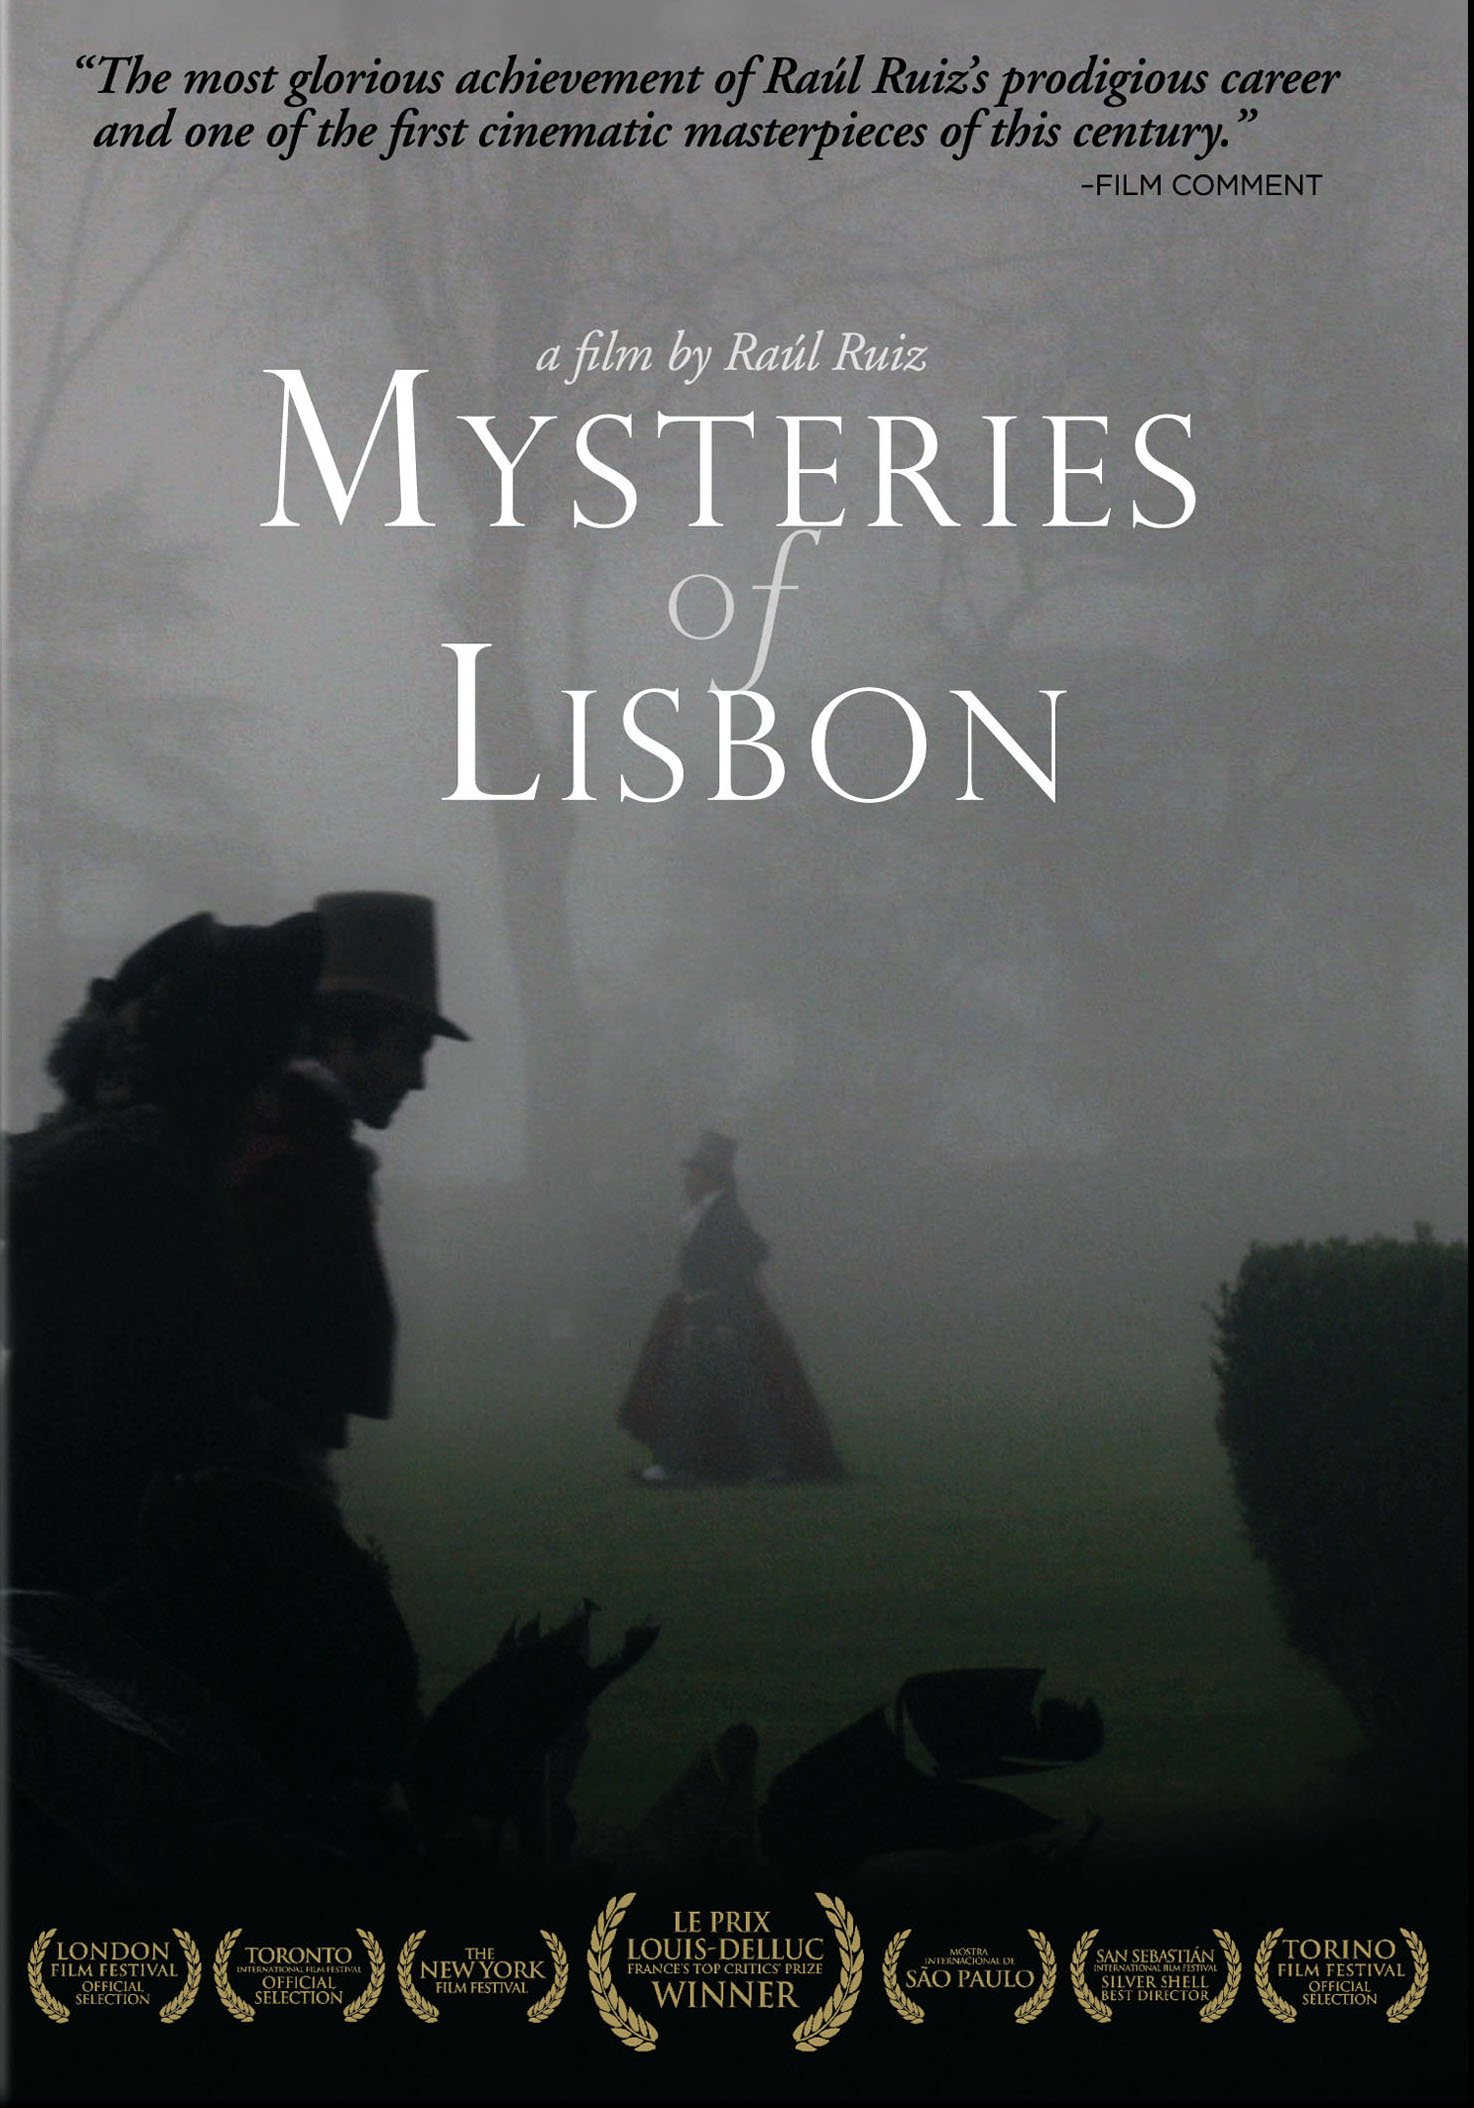 Watch Mysteries Of Lisbon English Subtitled Prime Video Mysteries of Lisbon